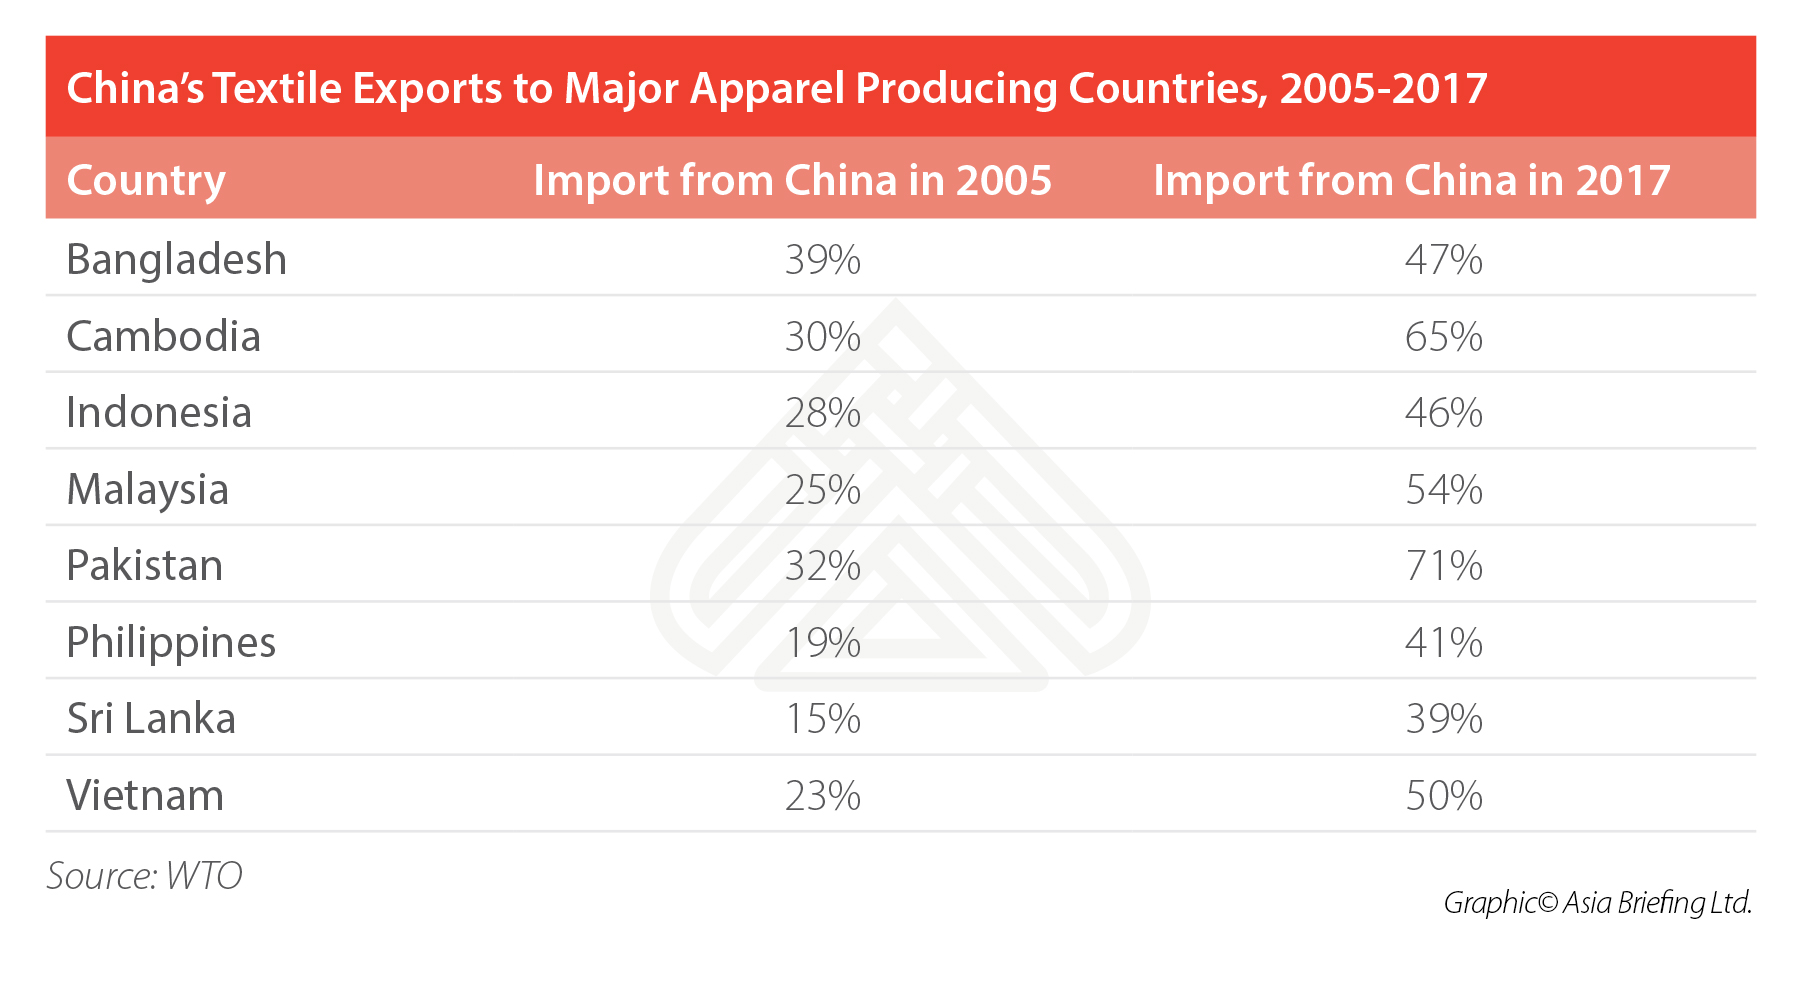 China's Textile Exports